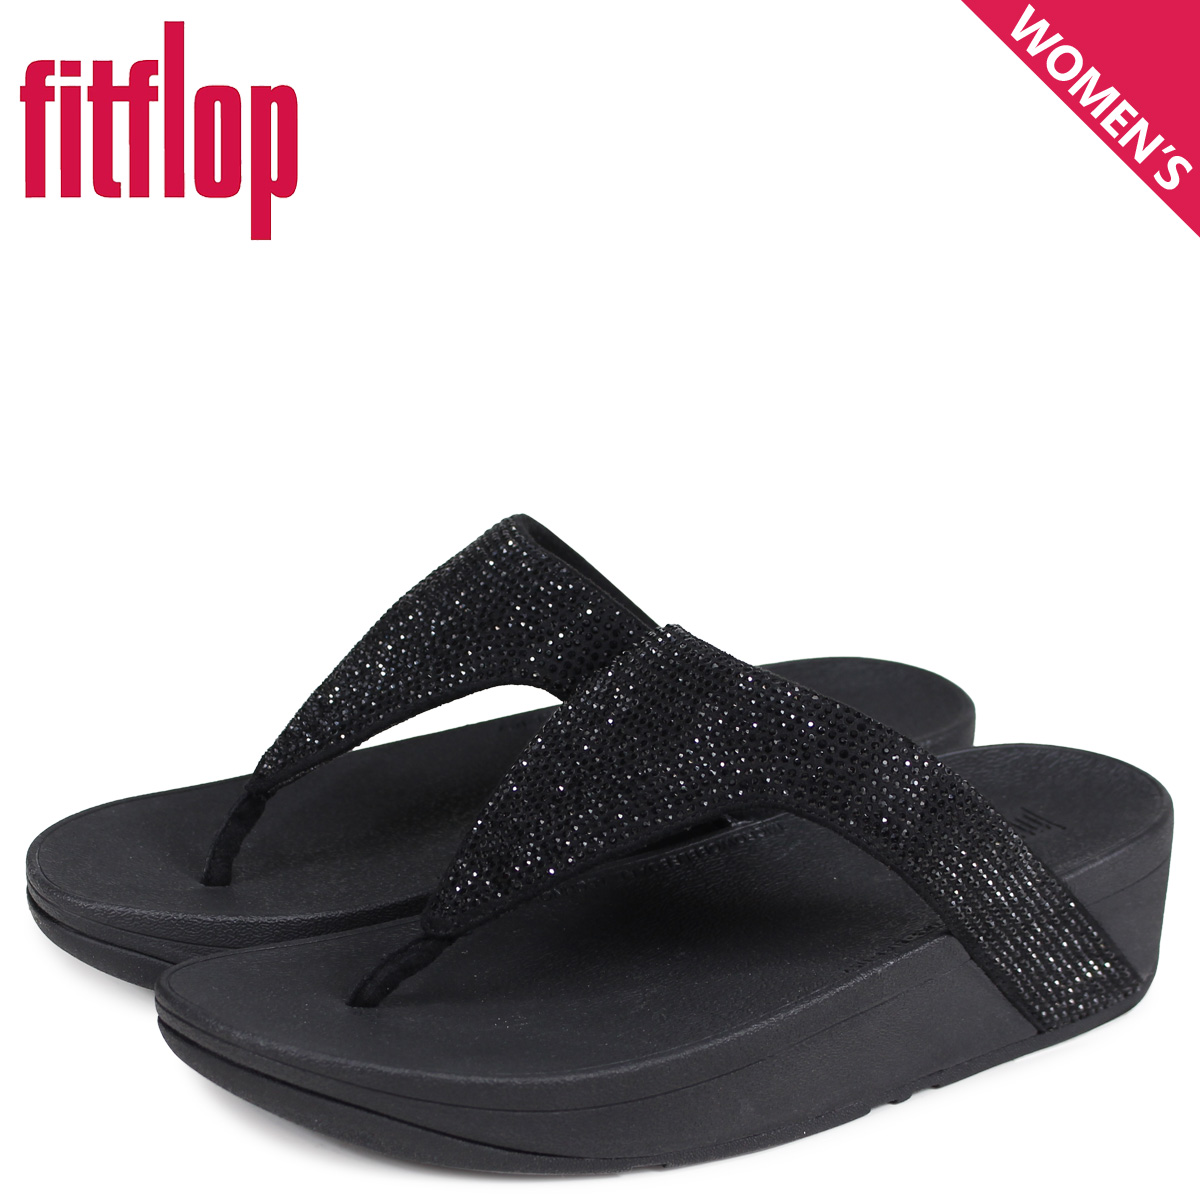 Fitting FLOP FitFlop サンダルトングサンダルロッティレディース thickness bottom LOTTIE  SHIMMERCRYSTAL black black T82